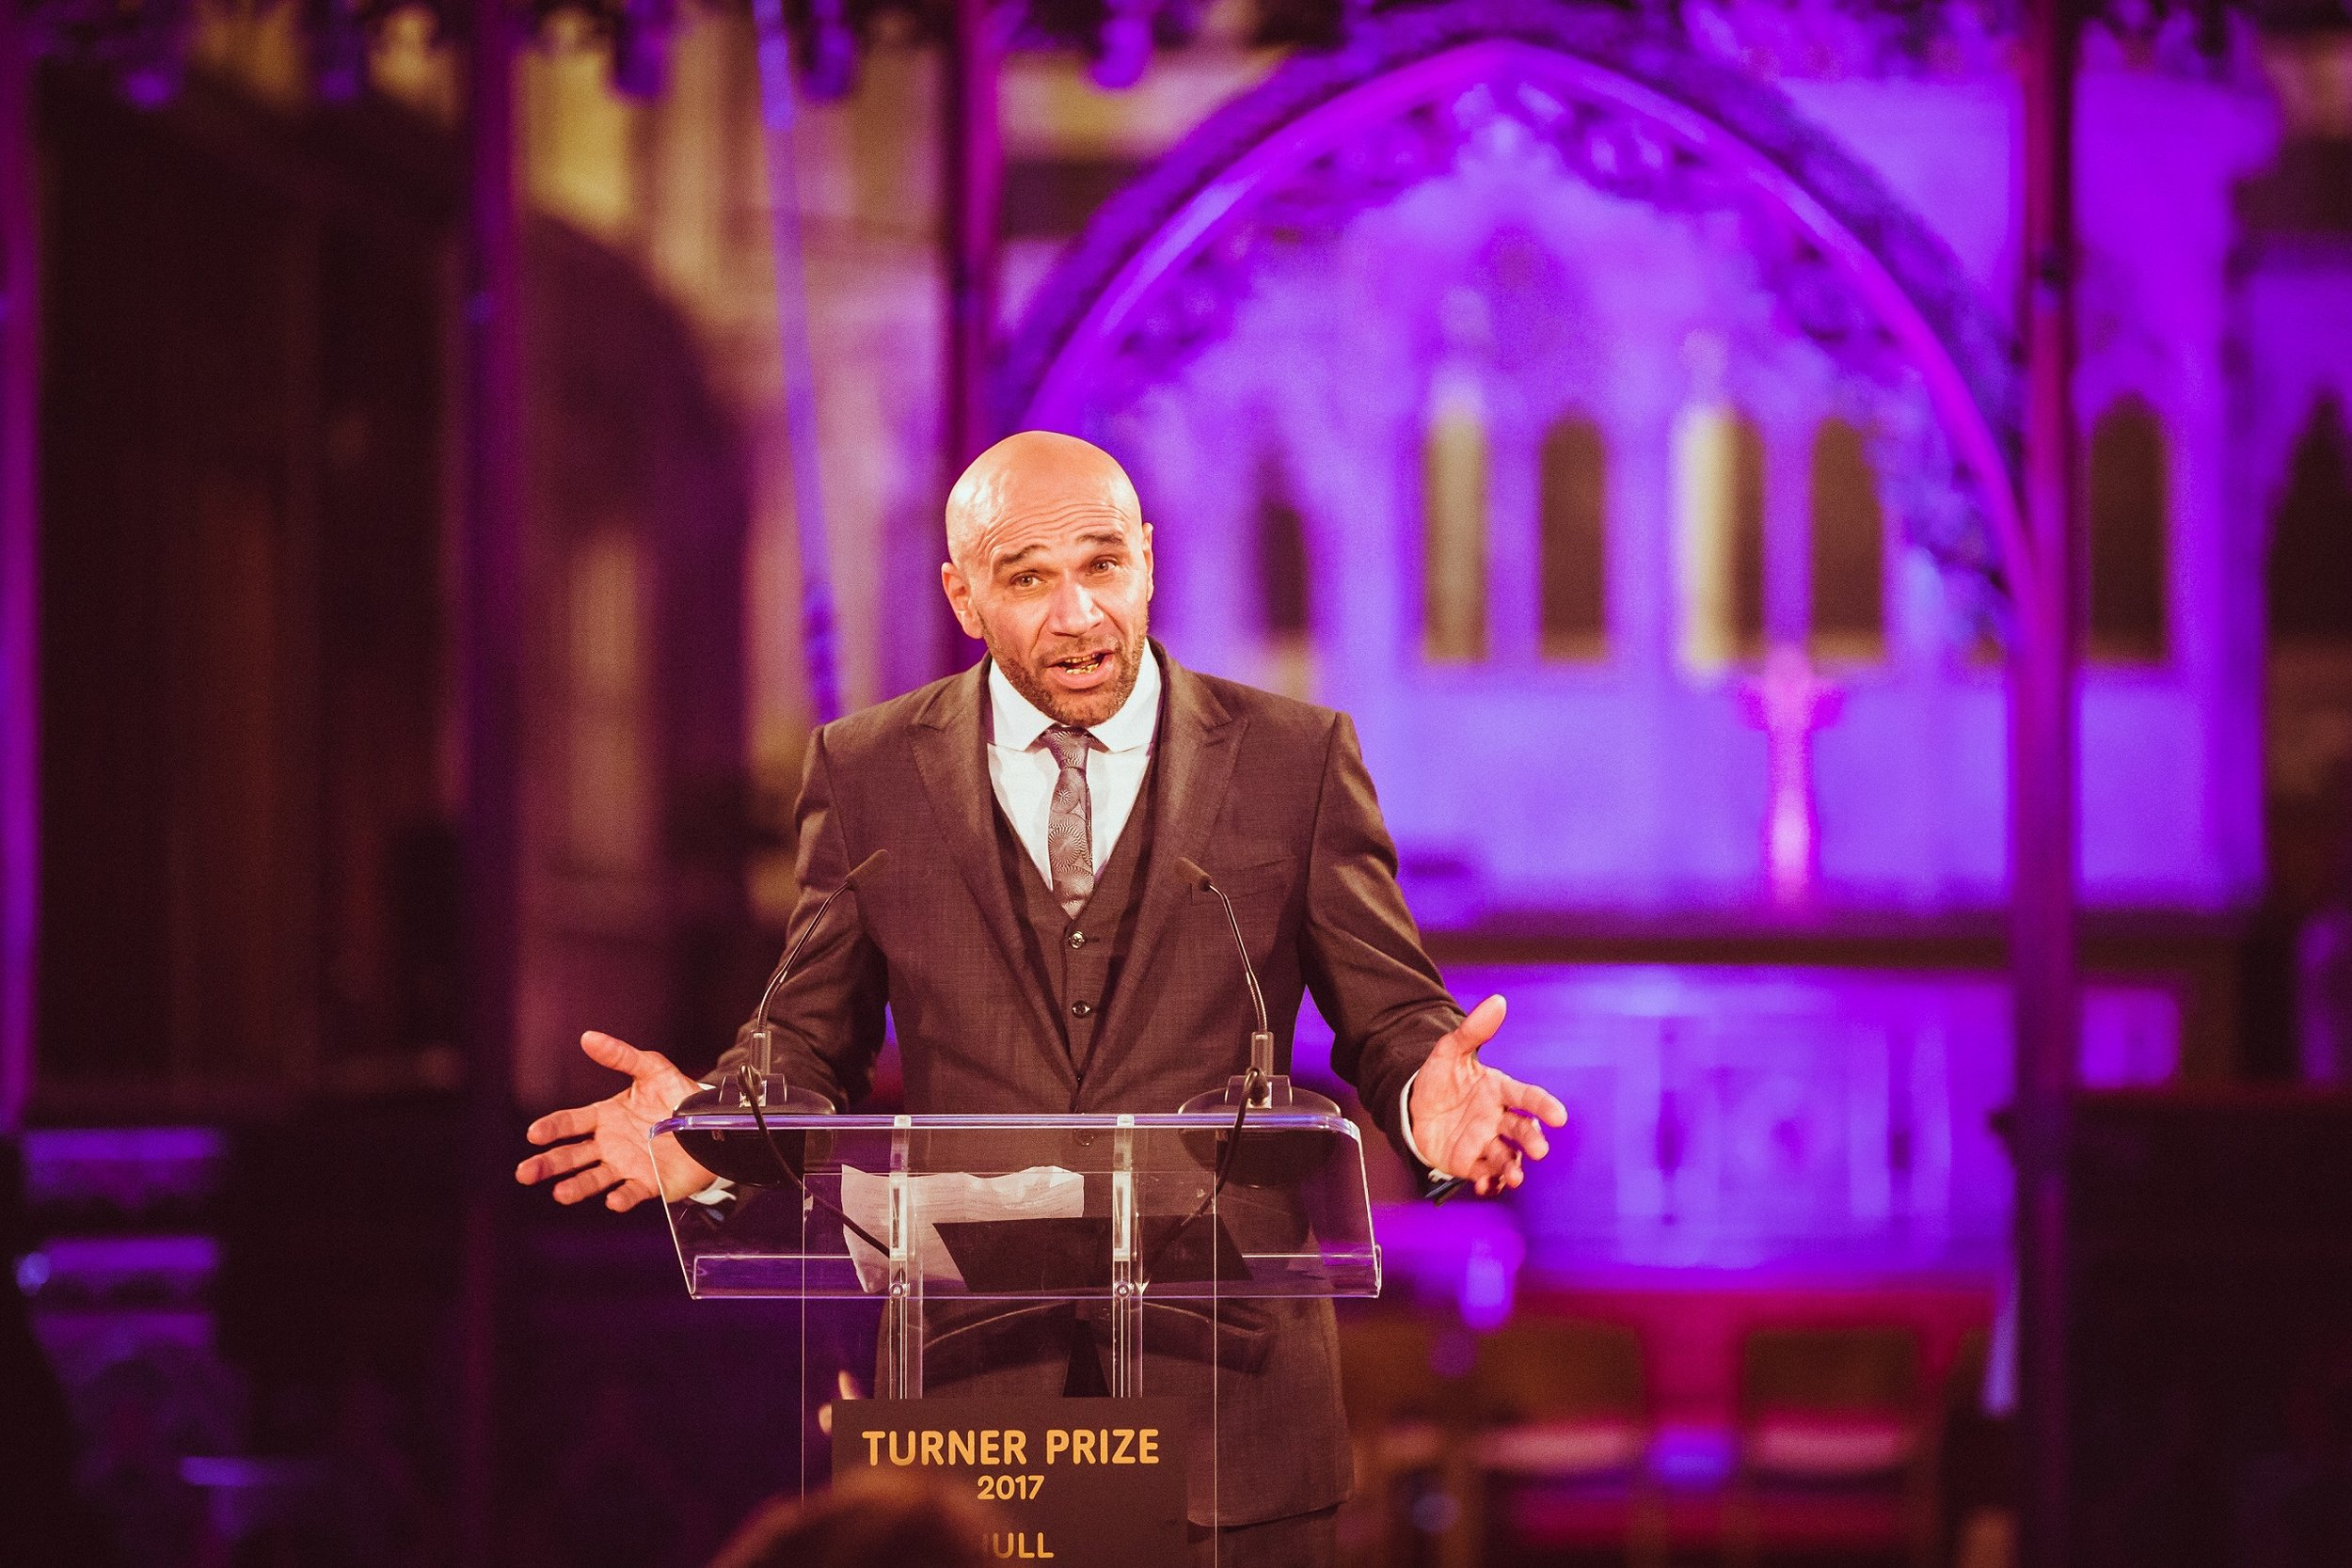 Artist, musician and actor Goldie prepares to announce the winner of the Turner Prize 2017. Picture: Chris Pepper/Hull UK City of Culture 2017